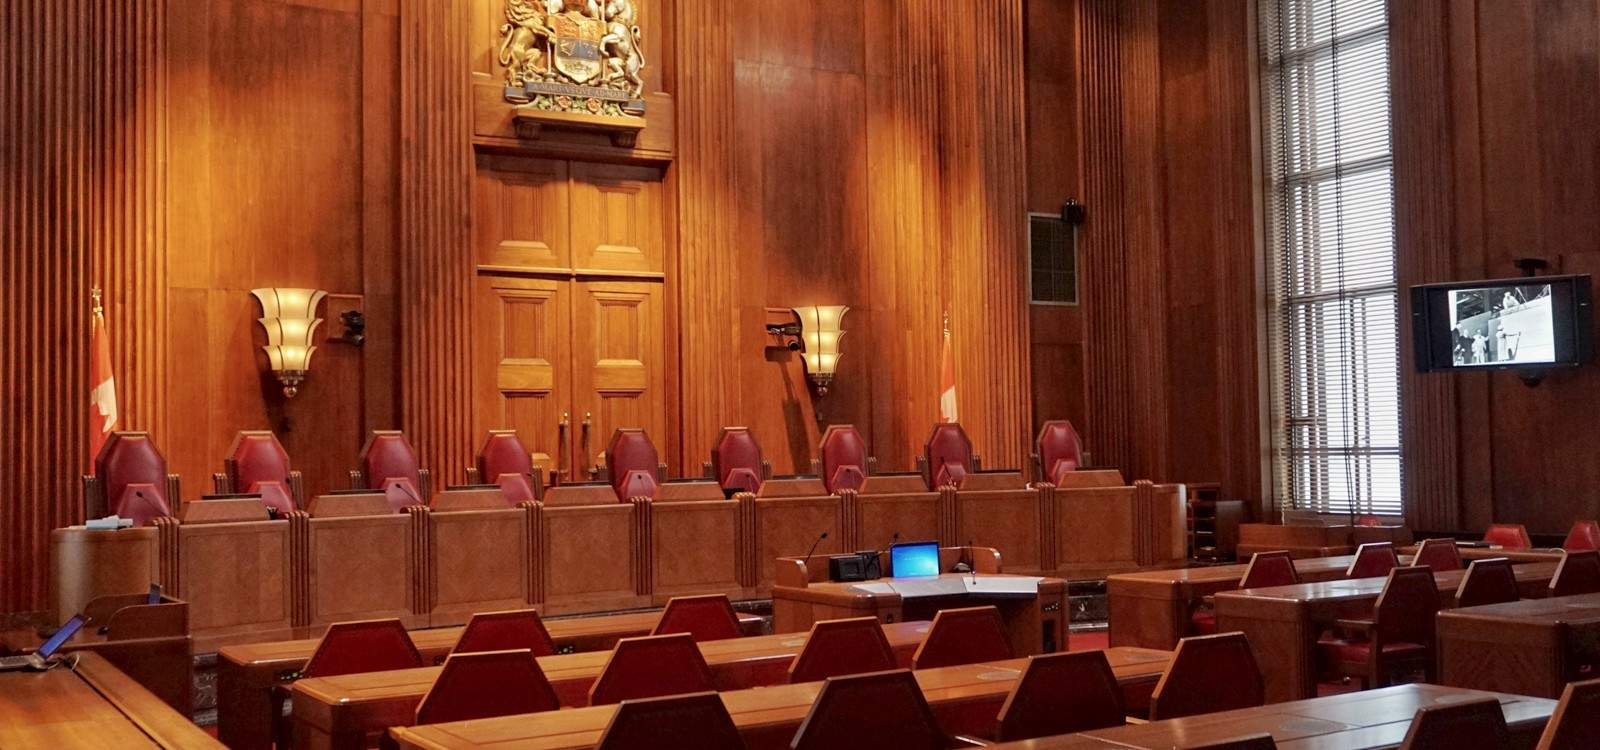 B.C. judges take provincial government to court - British